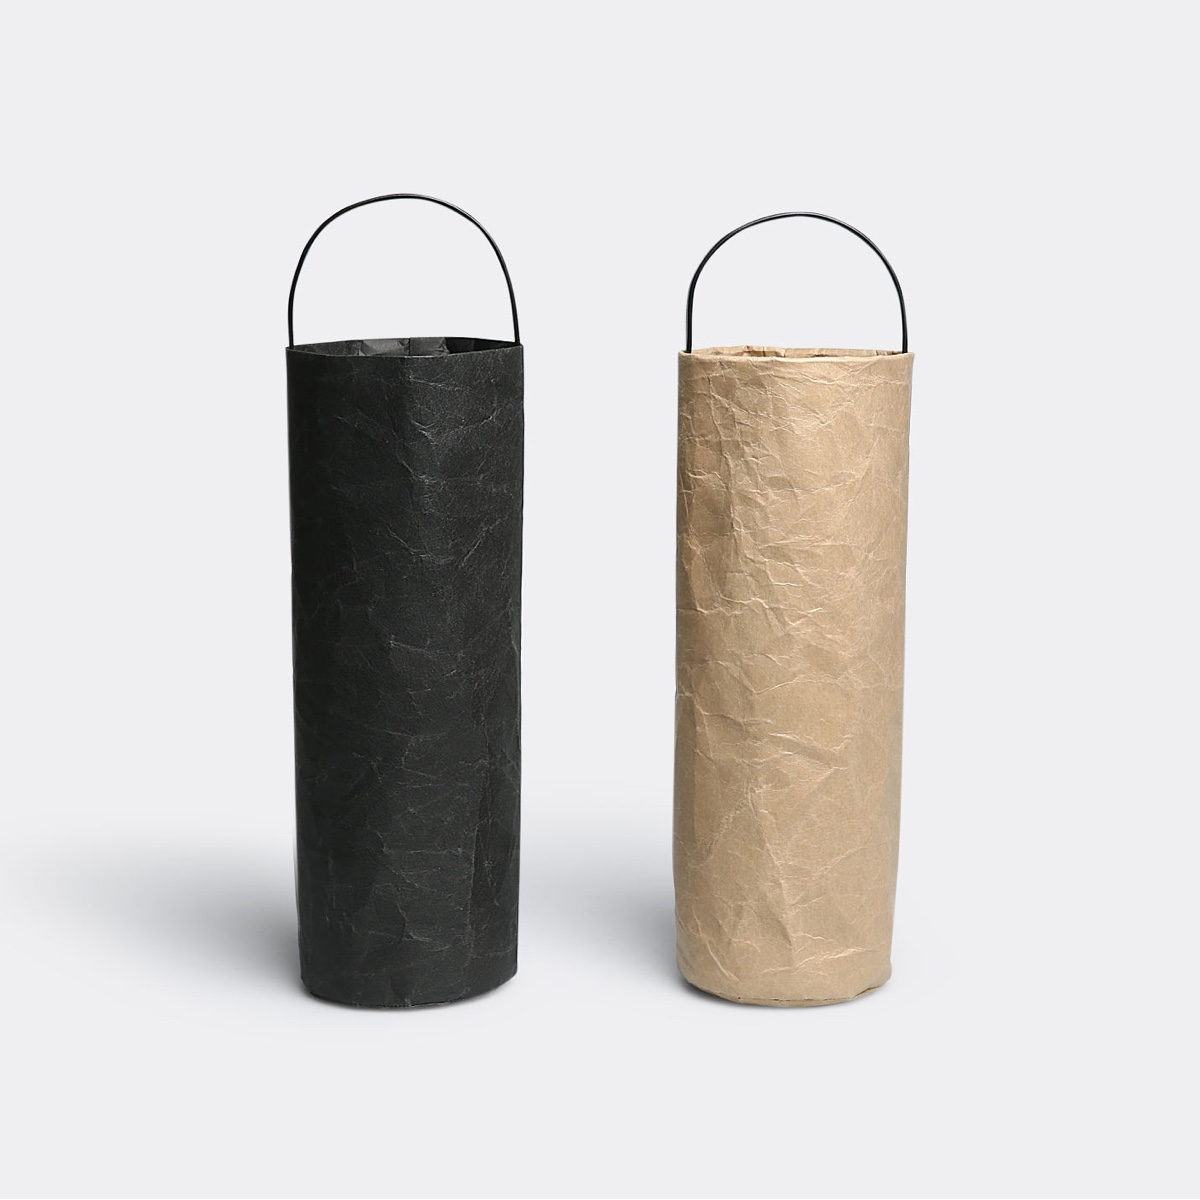 Wine bag by Naota Fukasawa and ONAO. Image © WallpaperSTORE*.